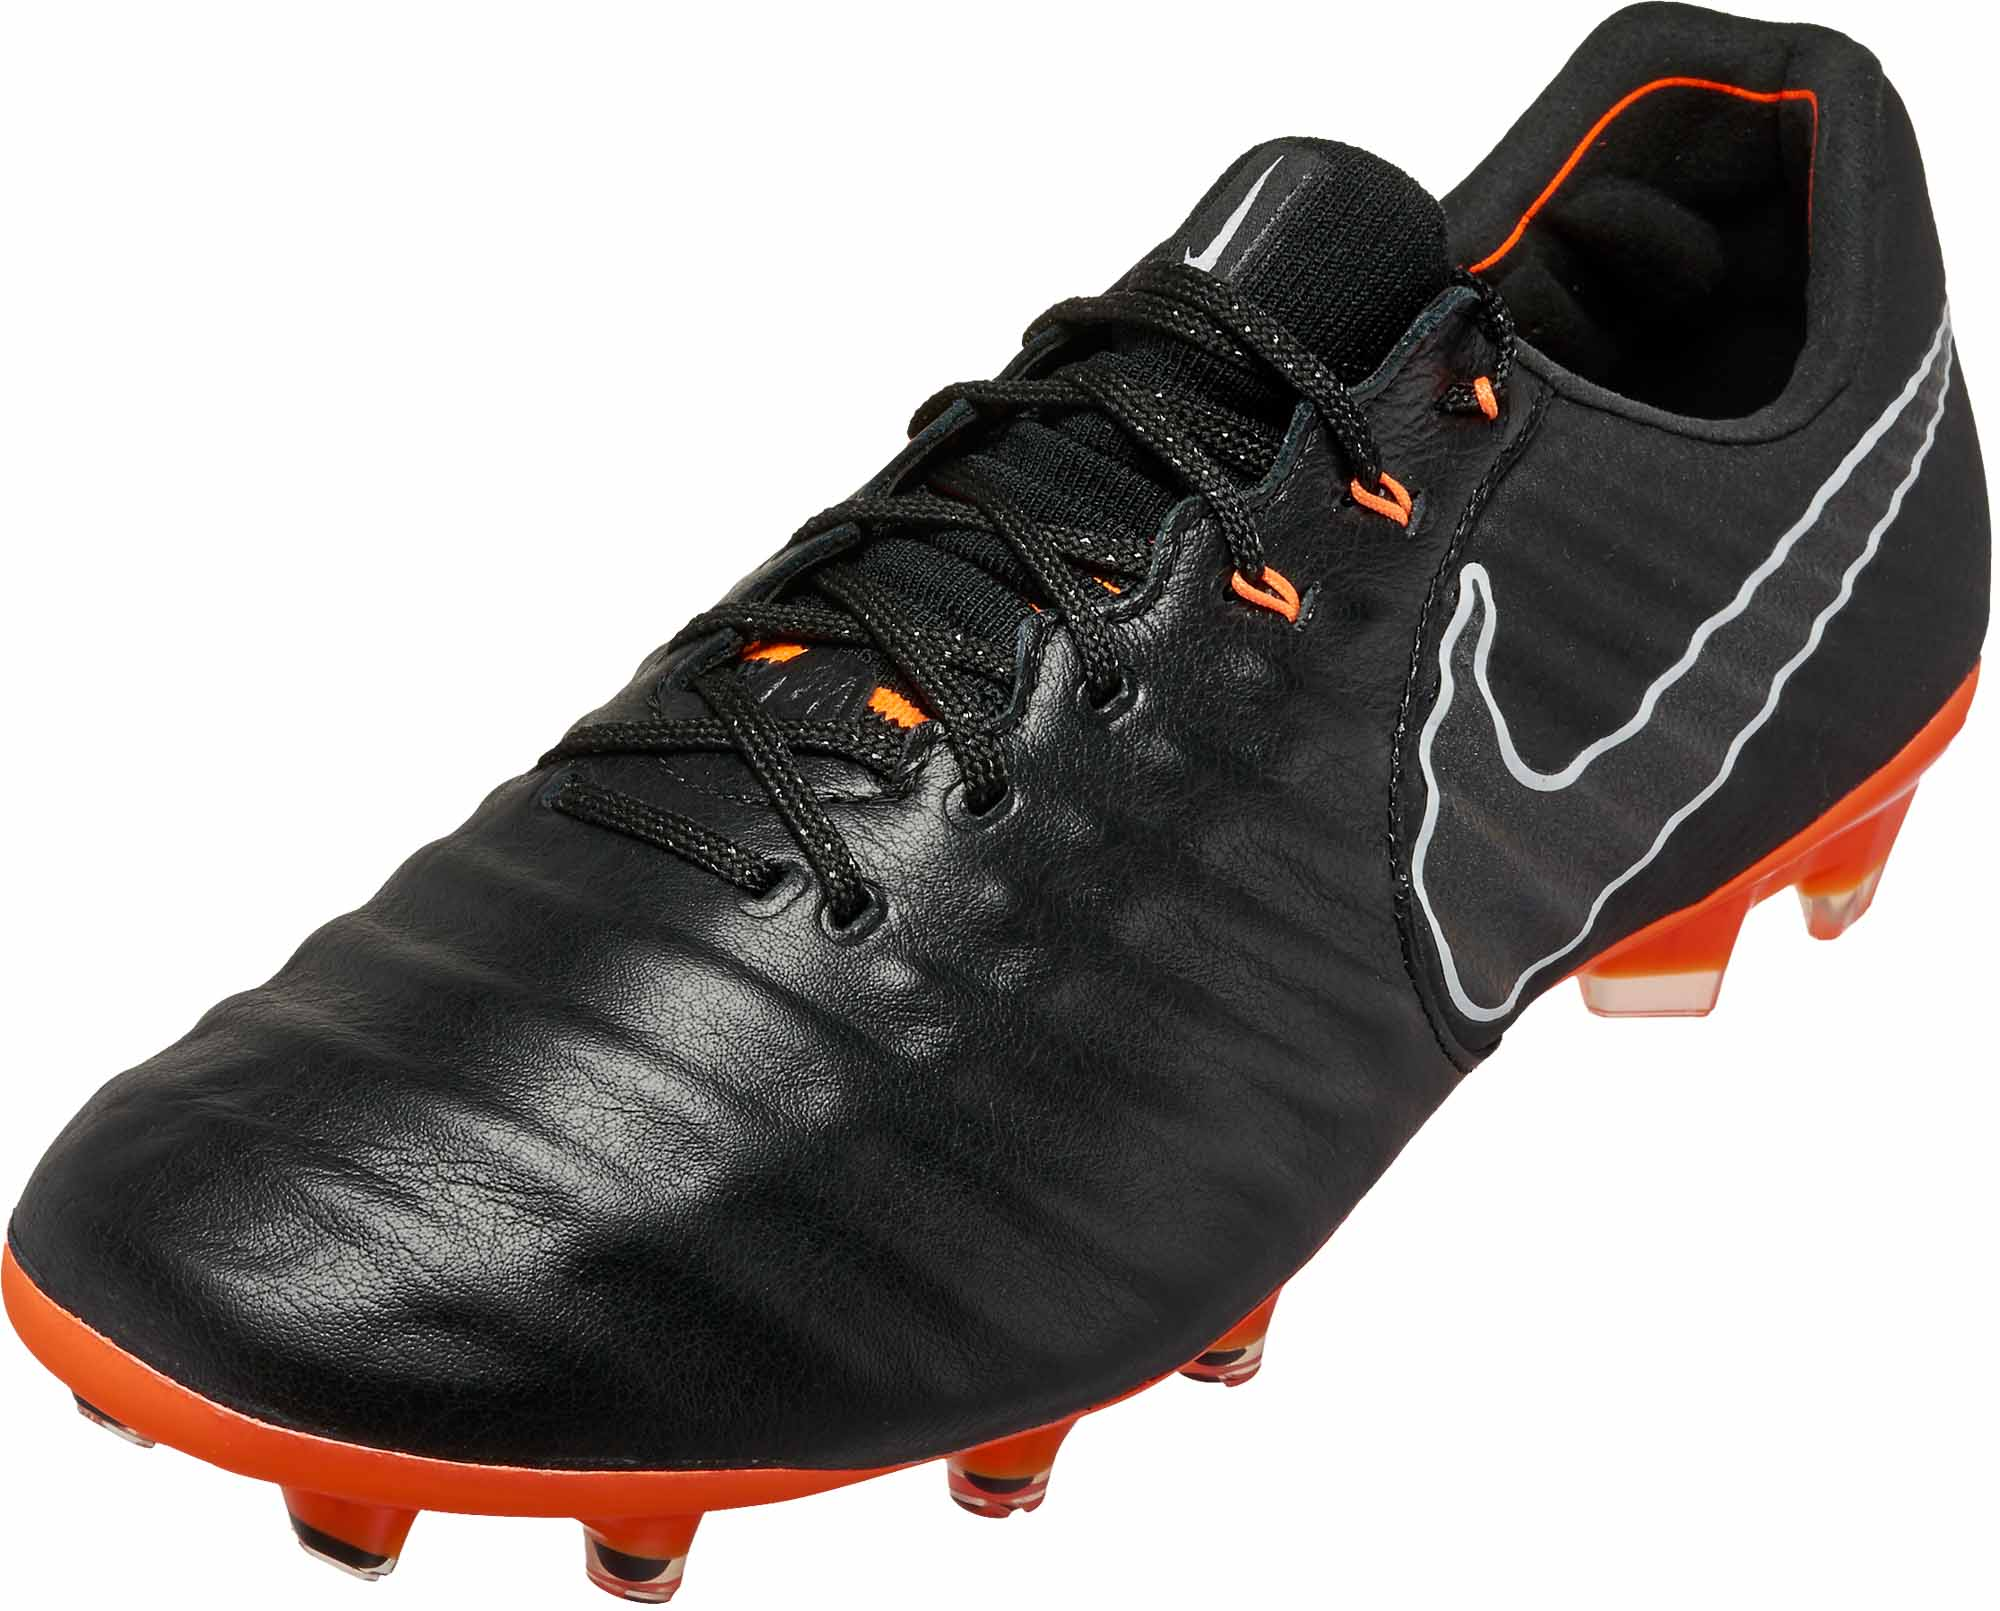 7fc899ccc66 Nike Tiempo Legend 7 Elite FG – Black Total Orange